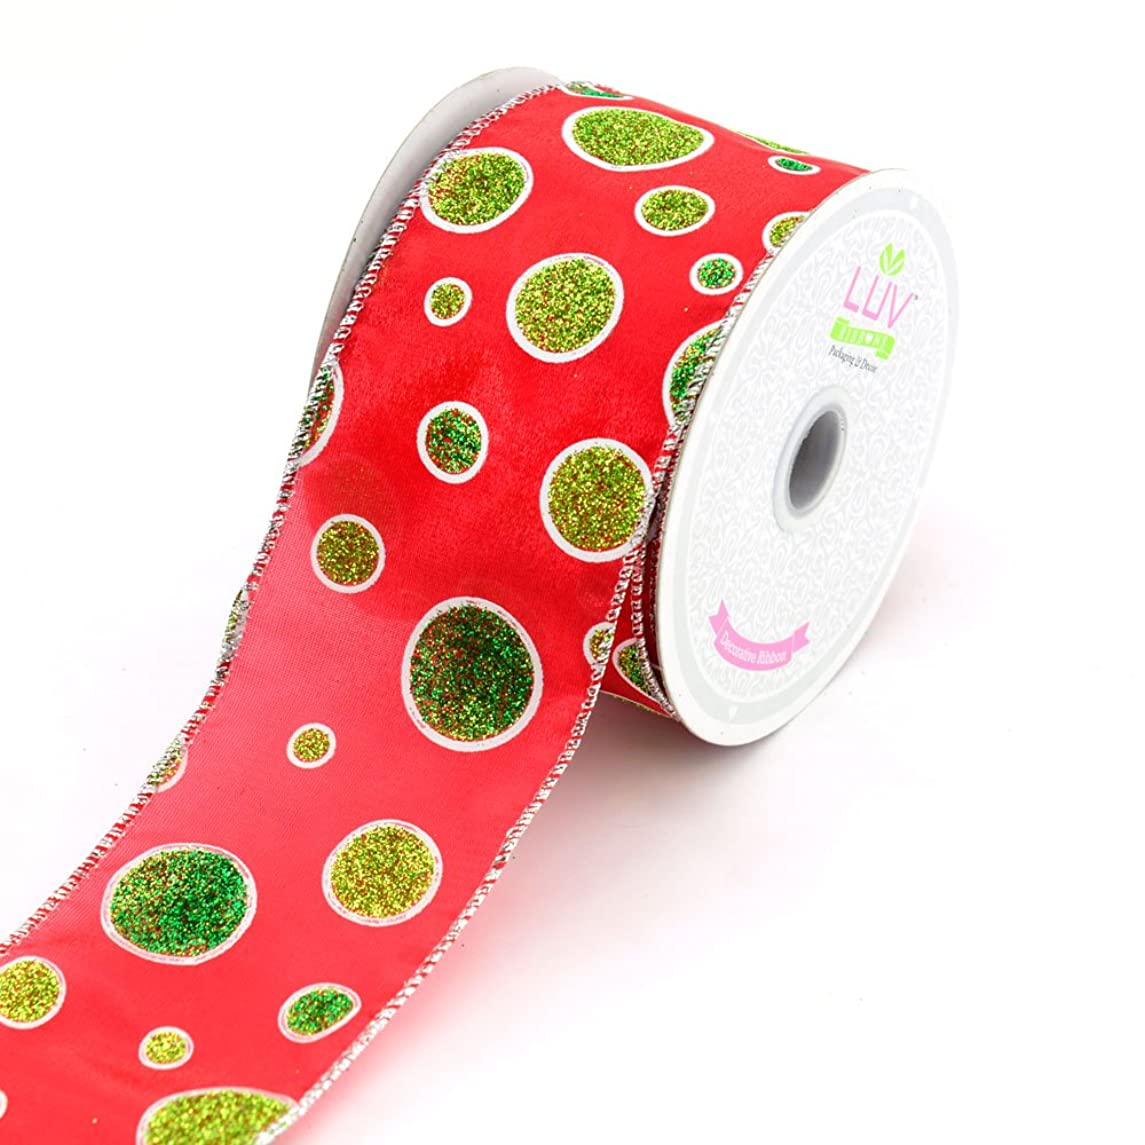 LUV RIBBONS by Creative Ideas 2-1/2-Inch Polyester Glitter Dots Ribbon, 10-Yard, Red